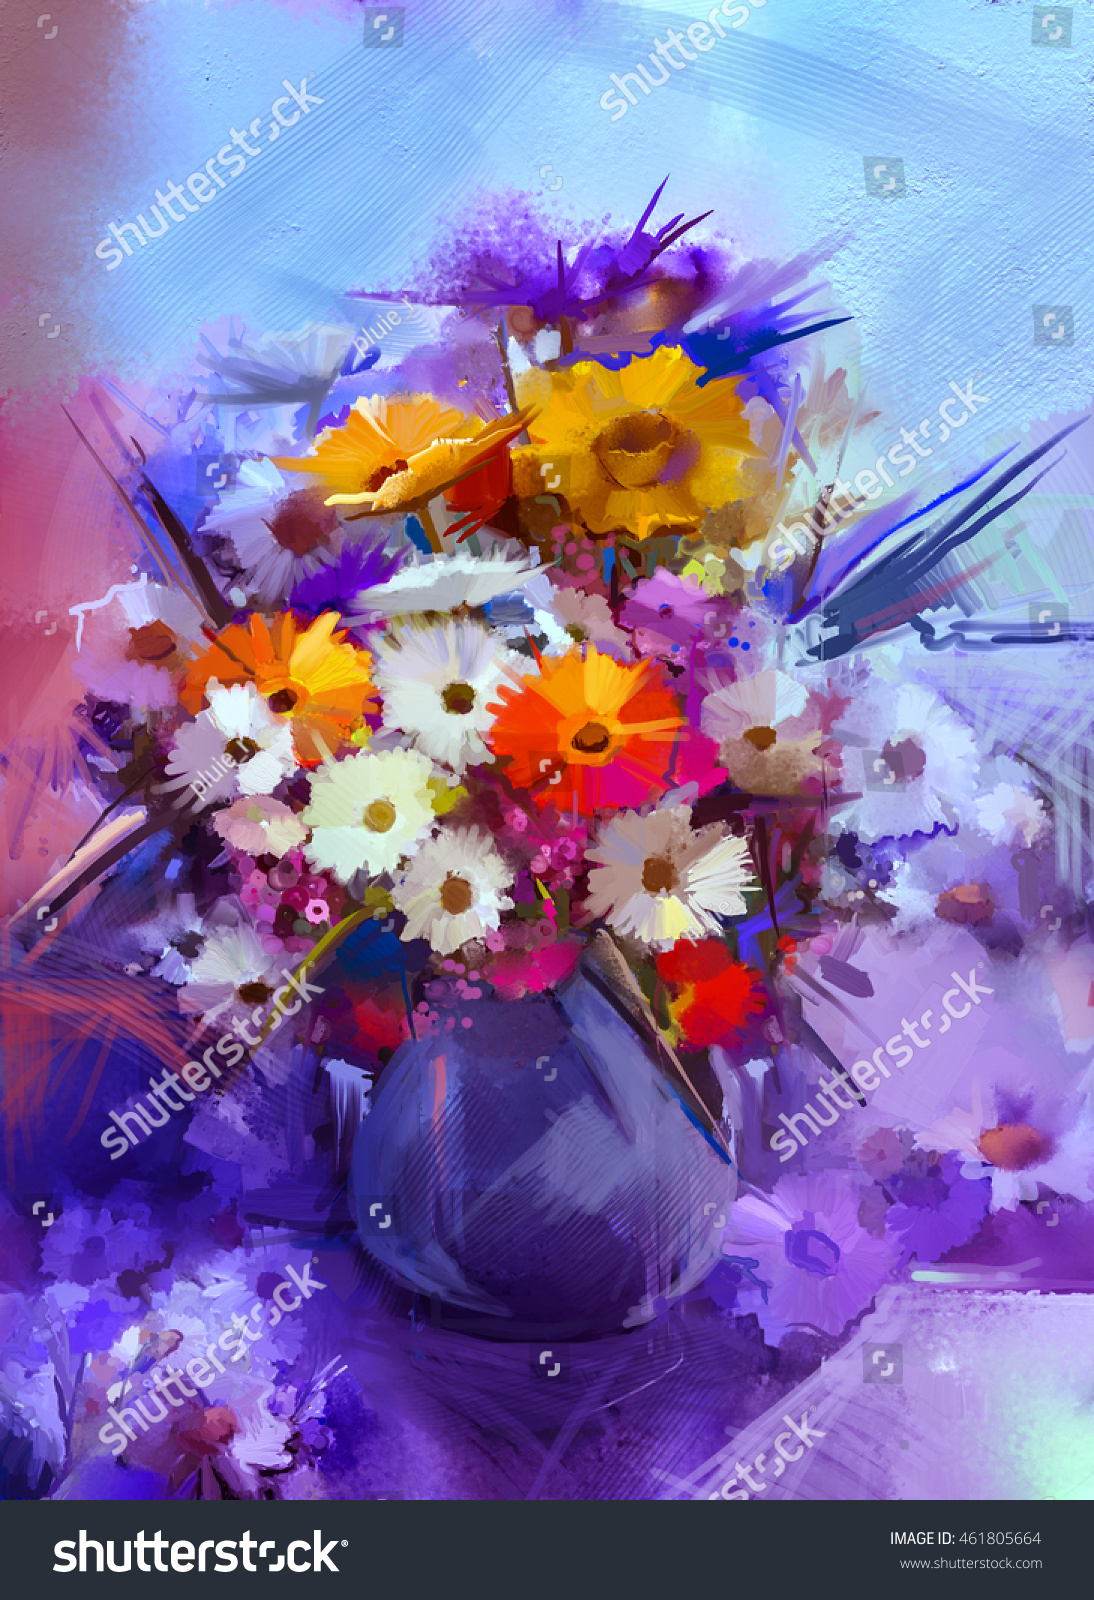 Oil painting flowers vase hand paint stock illustration 461805664 oil painting flowers in vase hand paint still life bouquet of whiteyellow and izmirmasajfo